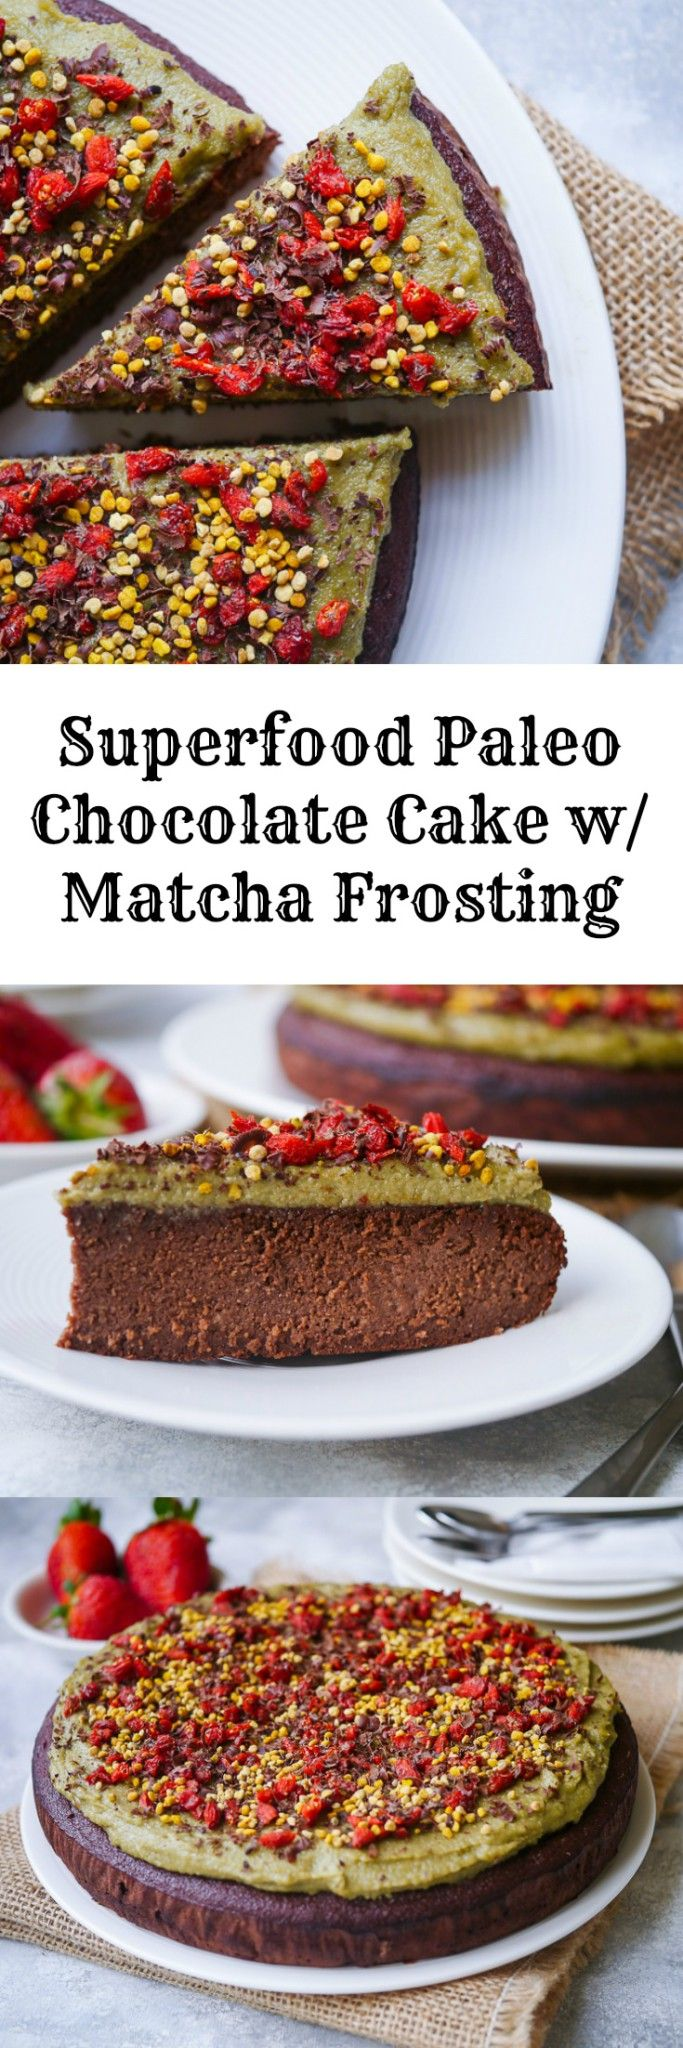 Superfood Paleo Chocolate Cake with Matcha Frosting | nourisheveryday.com | this luscious grain free cake is free from gluten, dairy and refined sugar, and yet it's SO incredibly delicious, with a rich, truly chocolatey flavour!